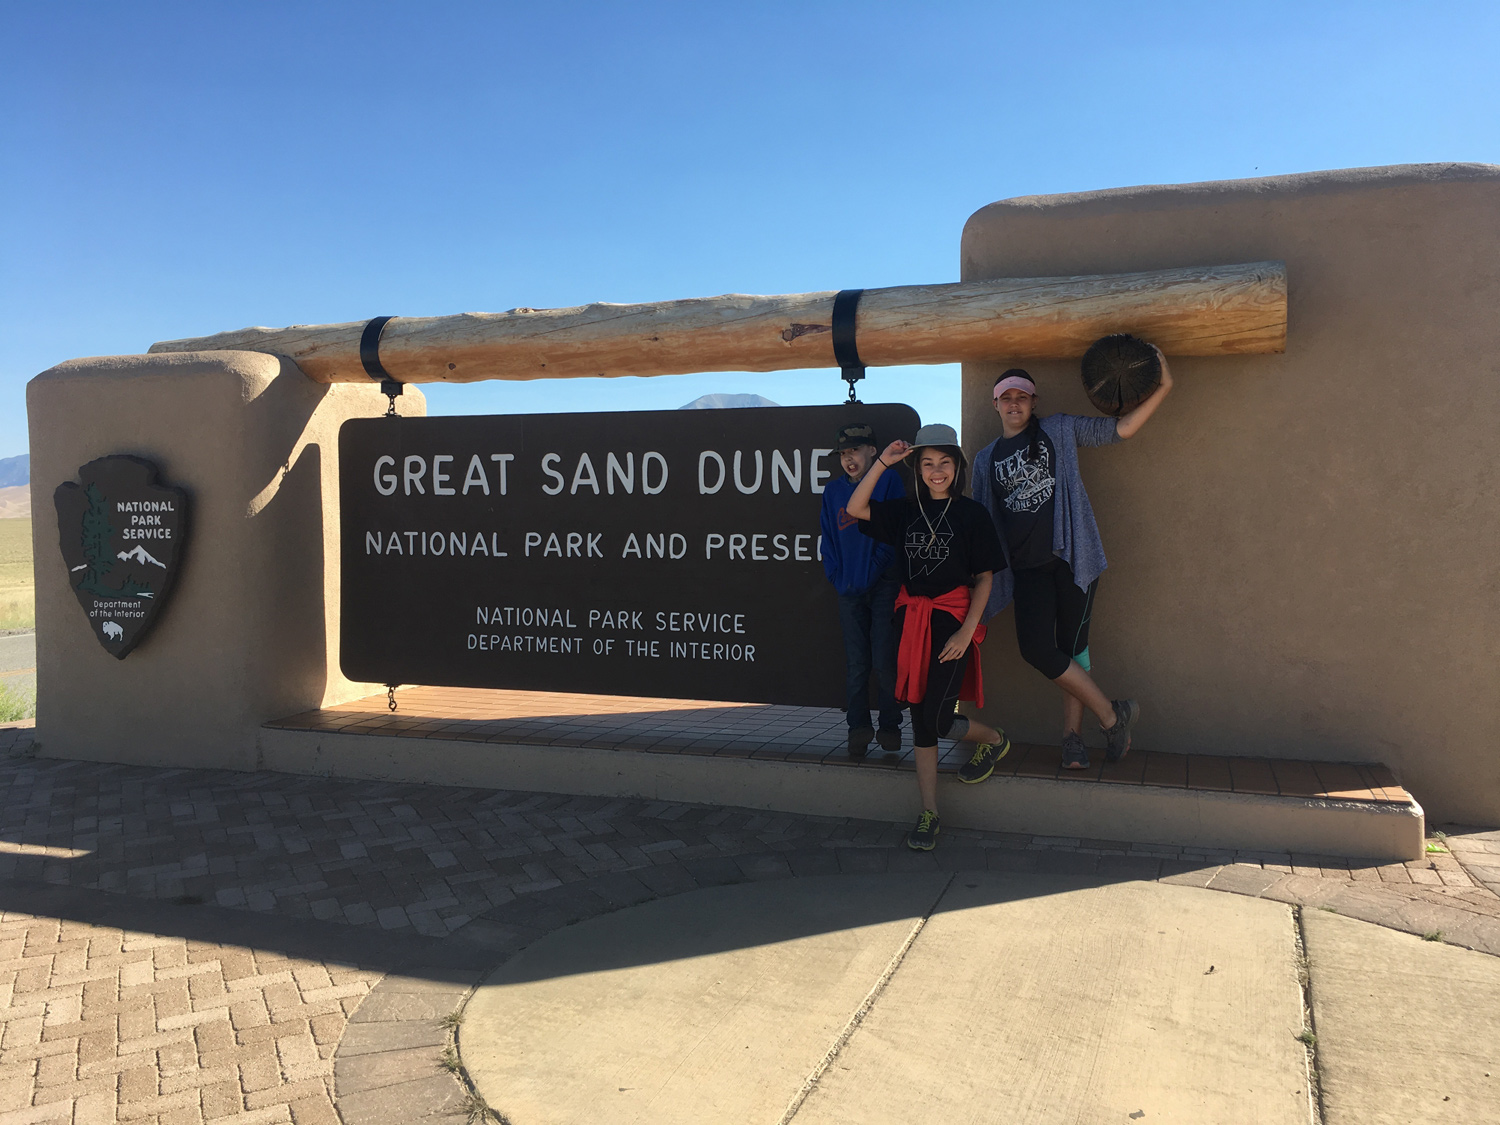 Our must have picture when we visit a National Park!